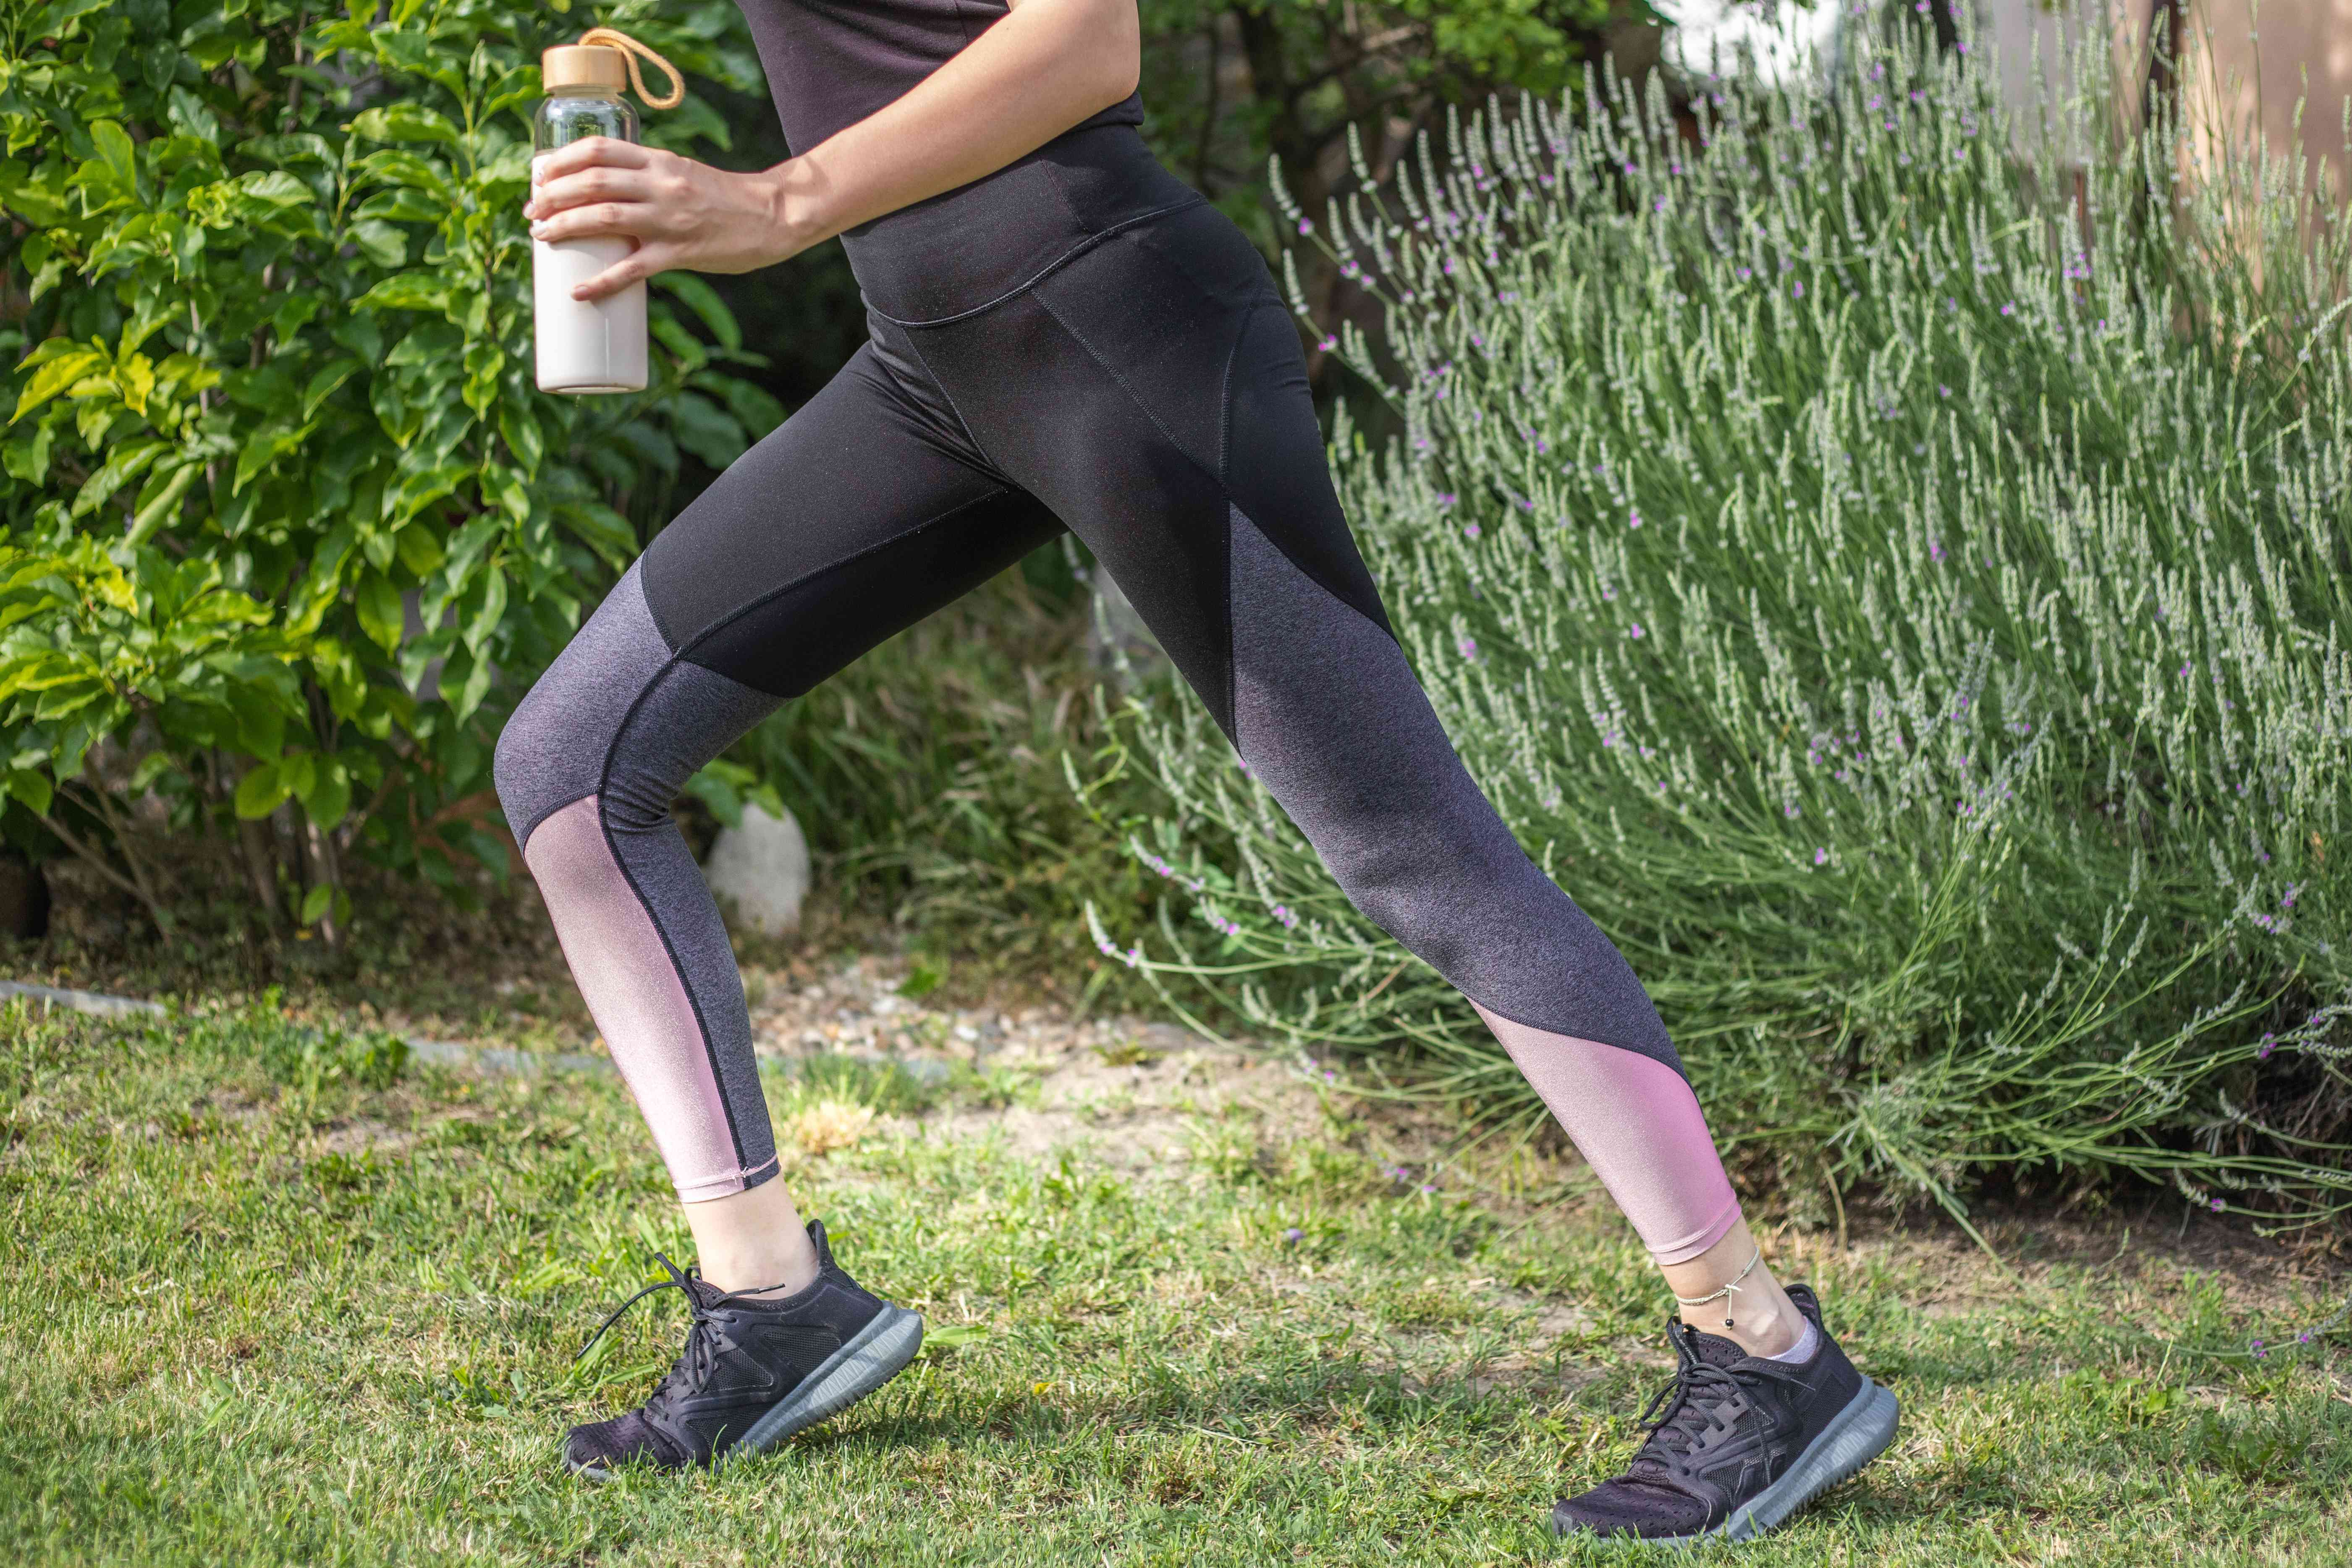 person in color-blocked leggings and workout shoes with water bottle stretches outside